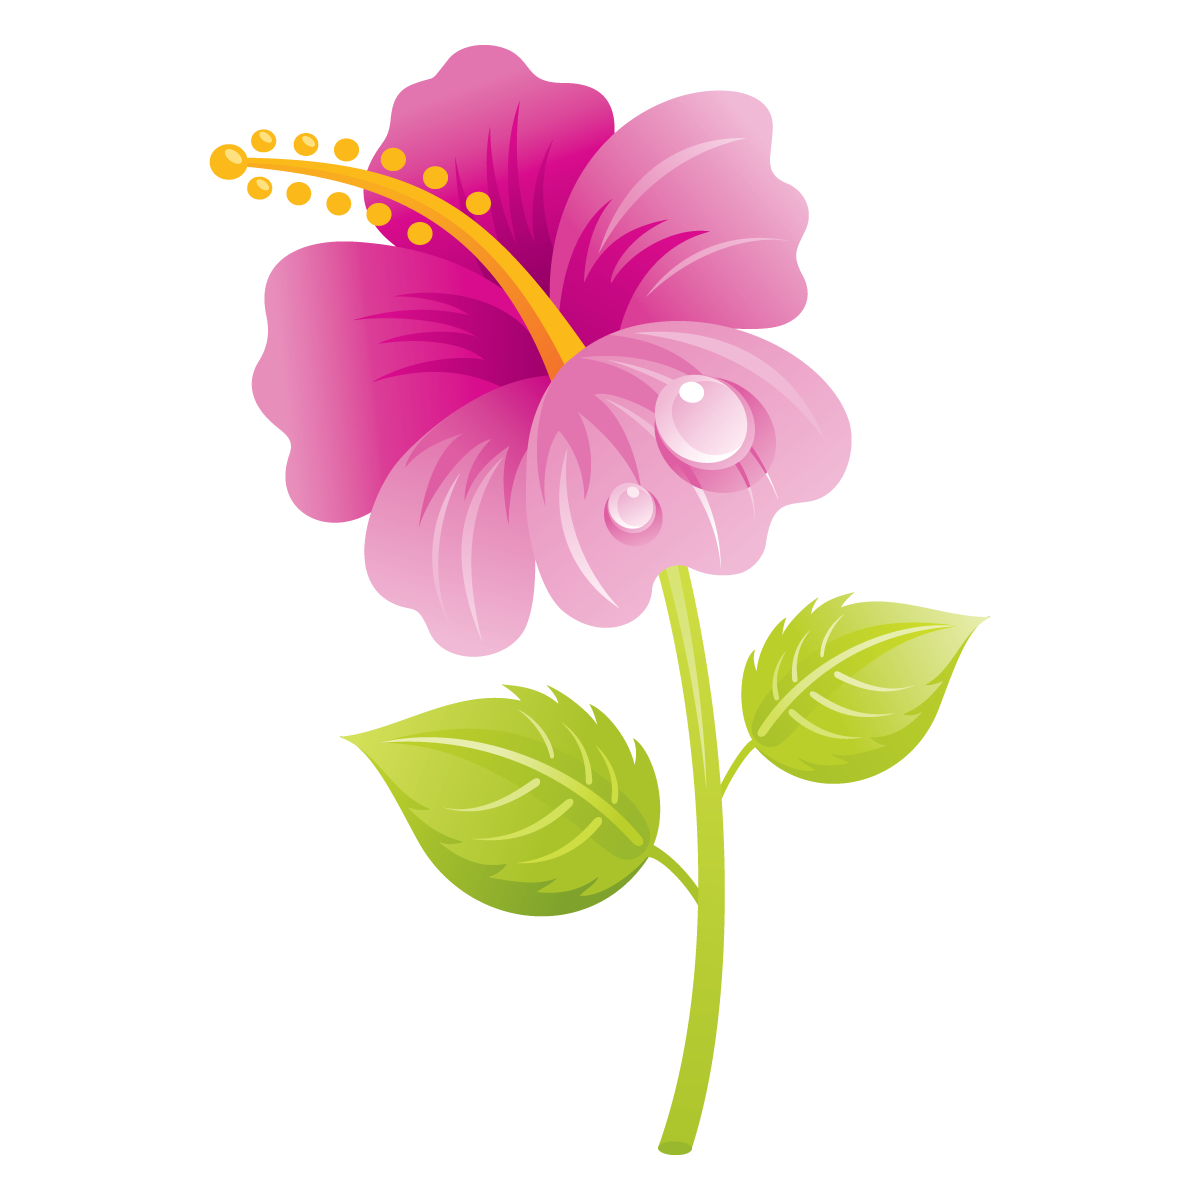 Gardening clipart mother. Flowers png buncee mothers